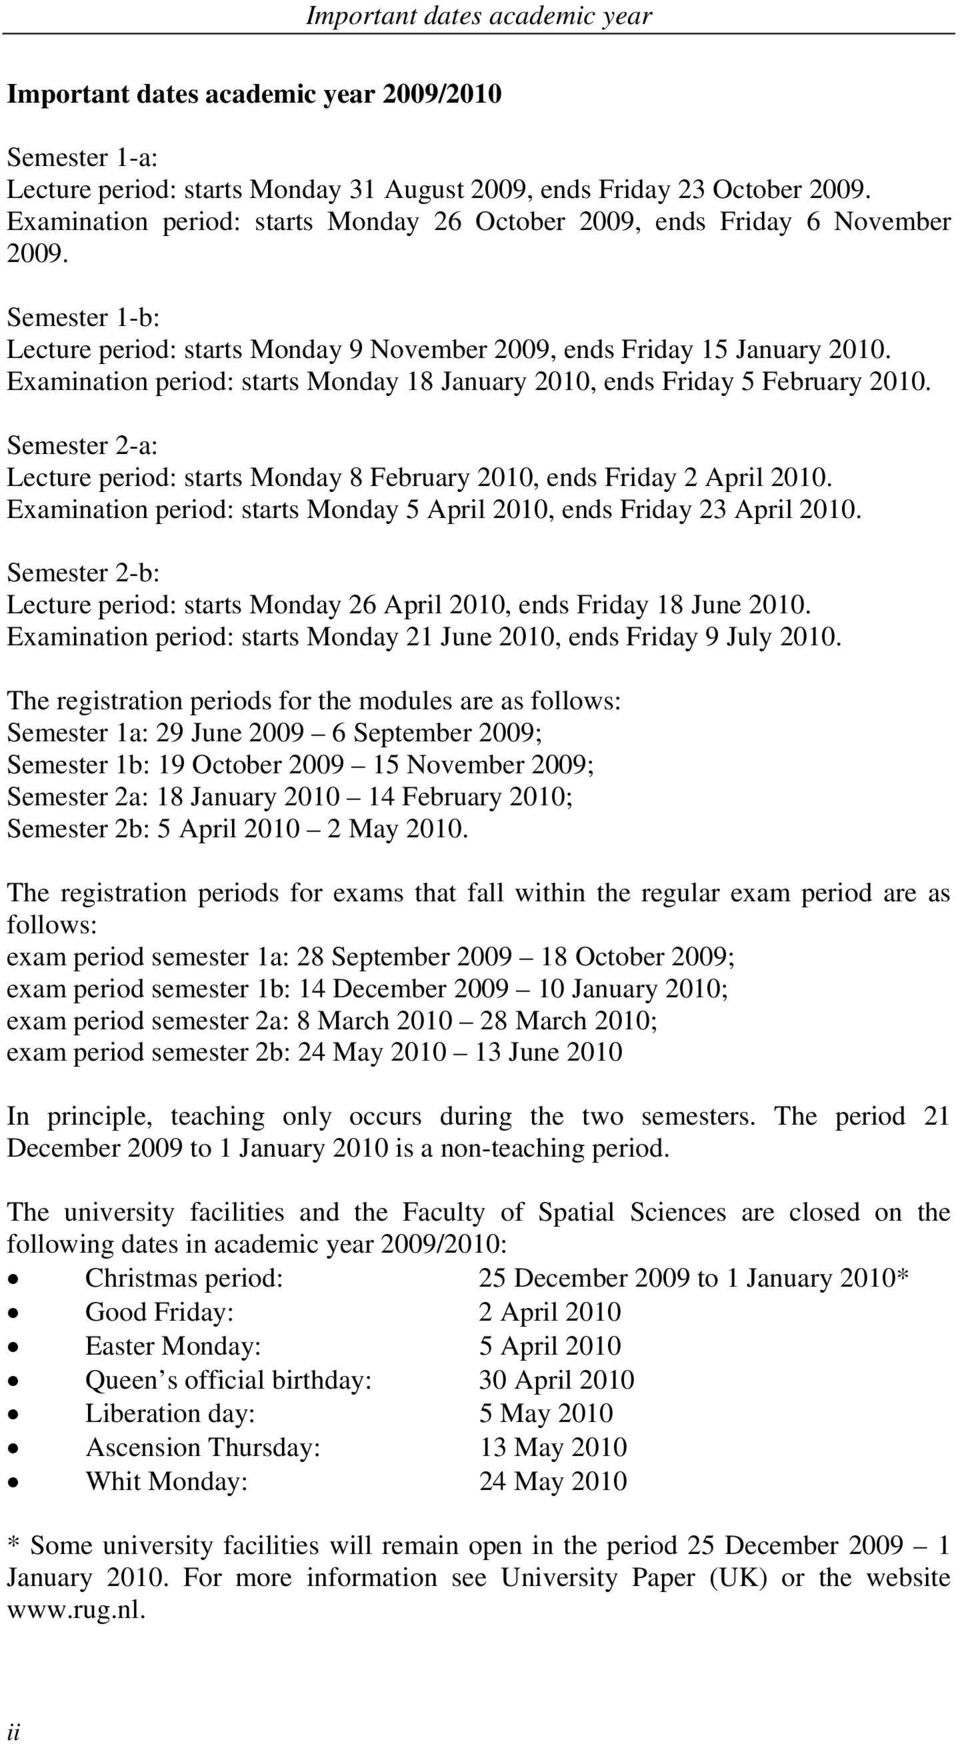 Examination period: starts Monday 18 January 2010, ends Friday 5 February 2010. Semester 2-a: Lecture period: starts Monday 8 February 2010, ends Friday 2 April 2010.